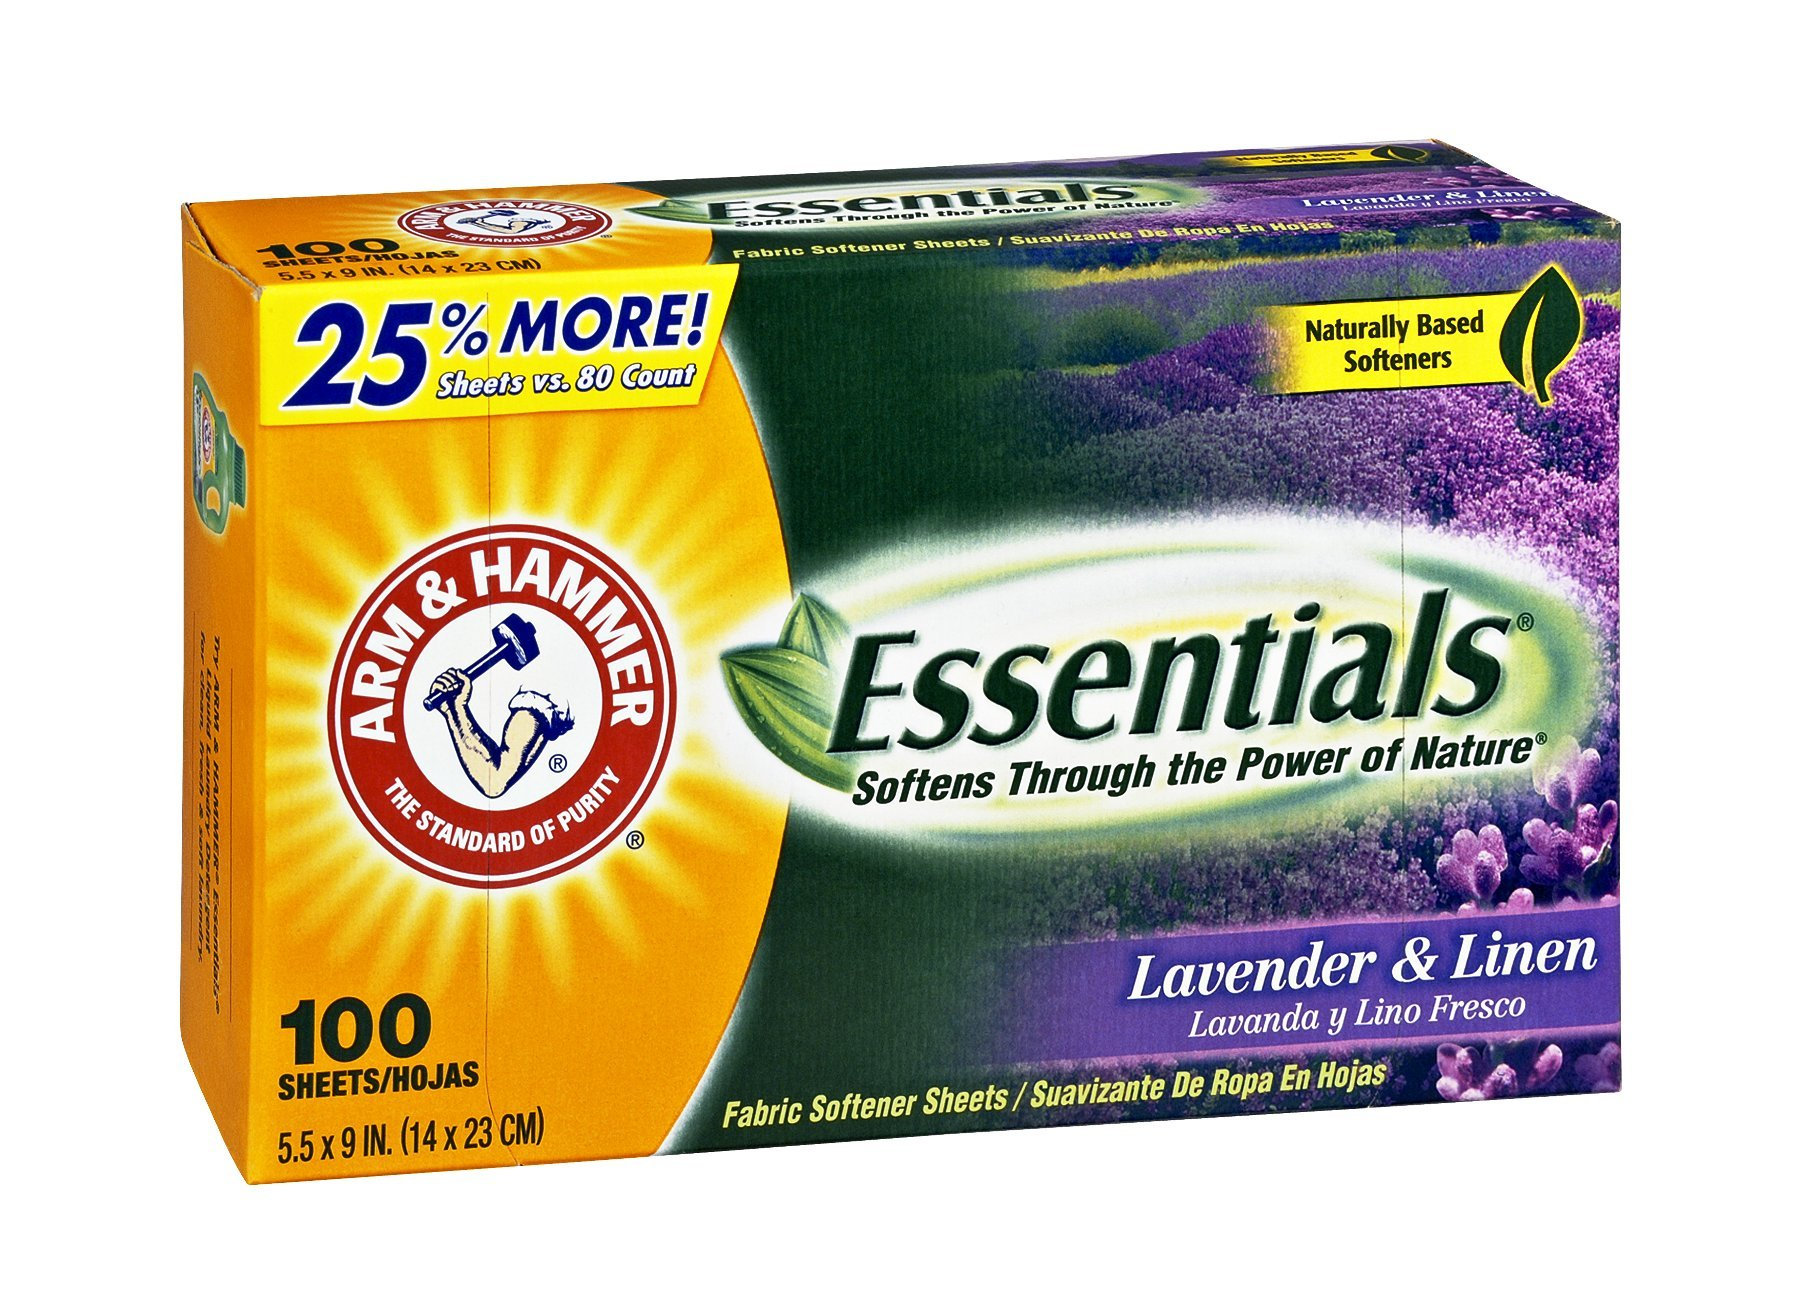 Arm & Hammer Essentials Lavender & Linen Fabric Softener Sheets, 100 CT (Pack of 6)